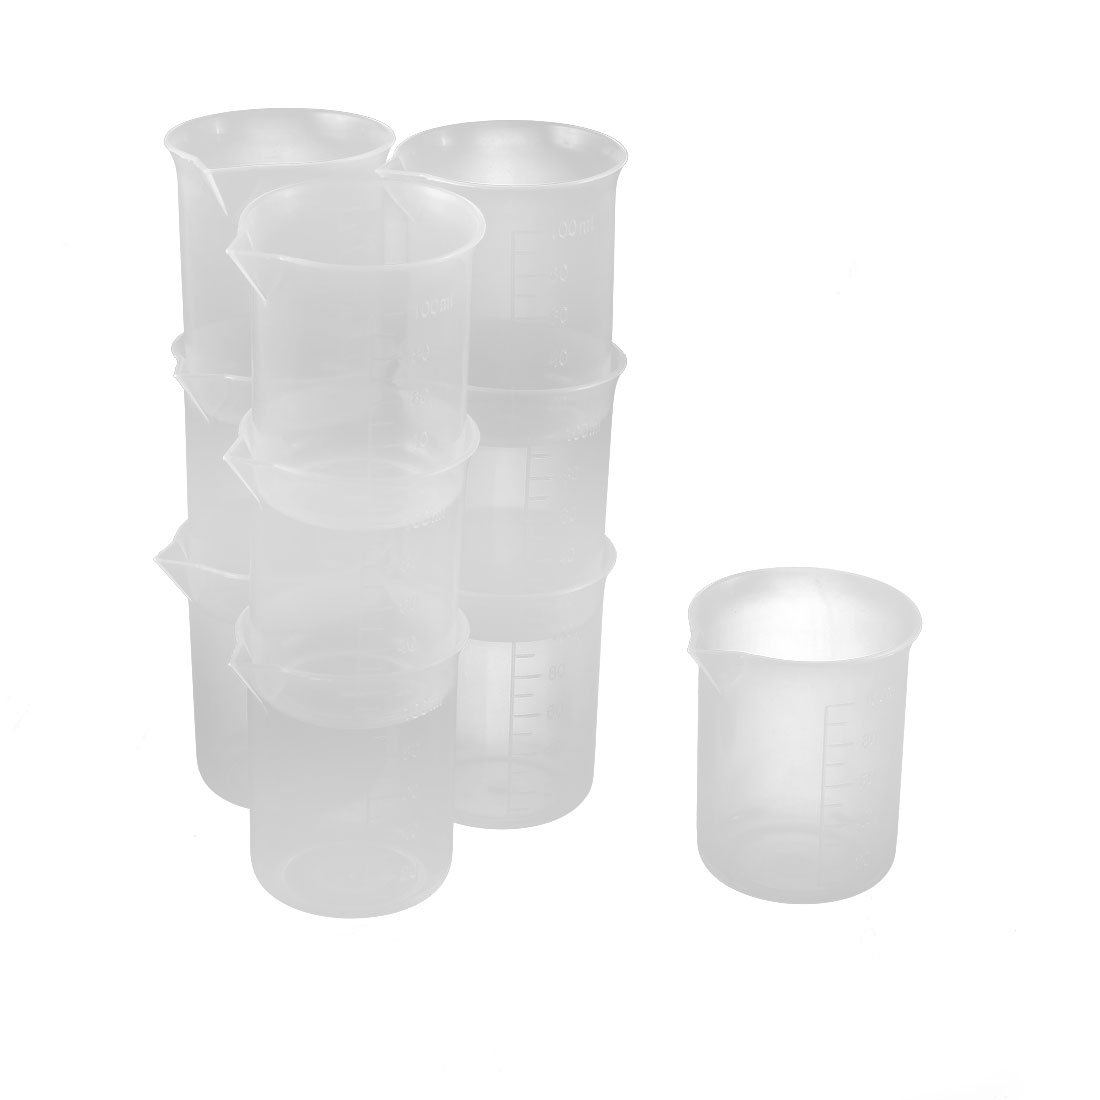 uxcell® Plastic 100mL Laboratory Sharp Spout Water Solution Graduated Beaker 10pcs US-SA-AJD-147636